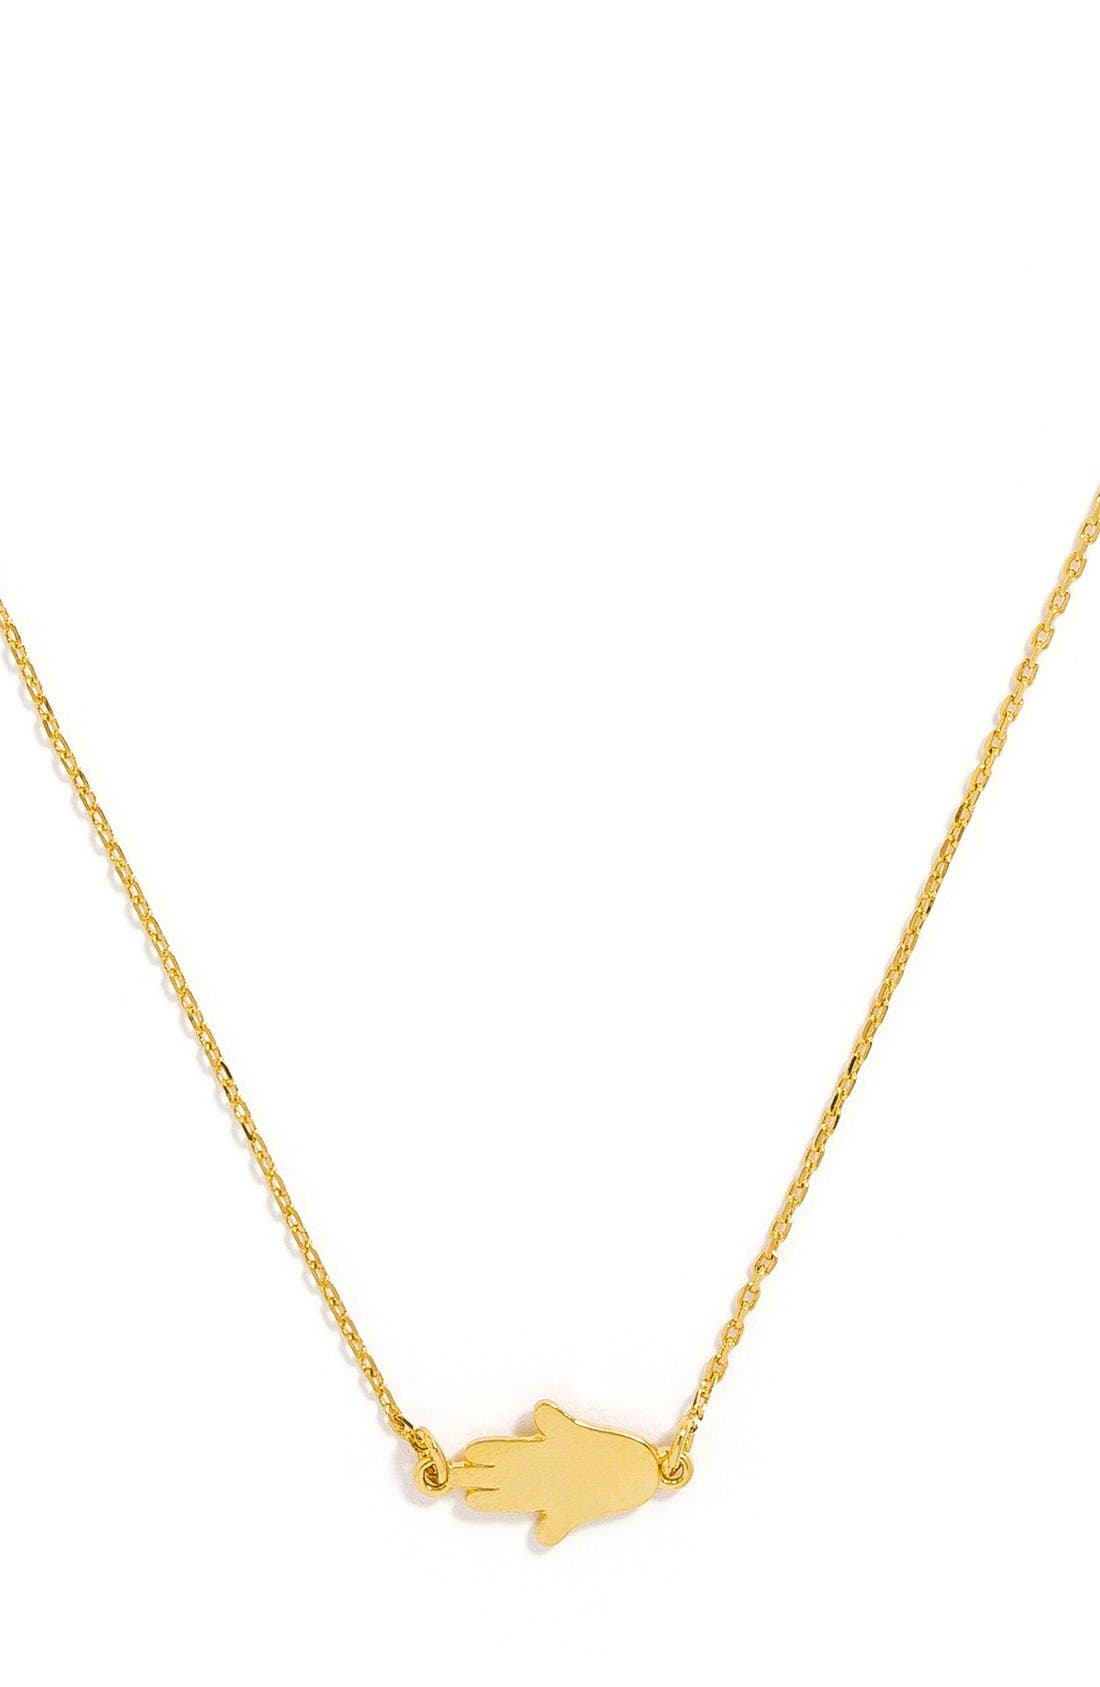 'Pyramid' Layered Necklace Gift Set,                             Alternate thumbnail 4, color,                             710